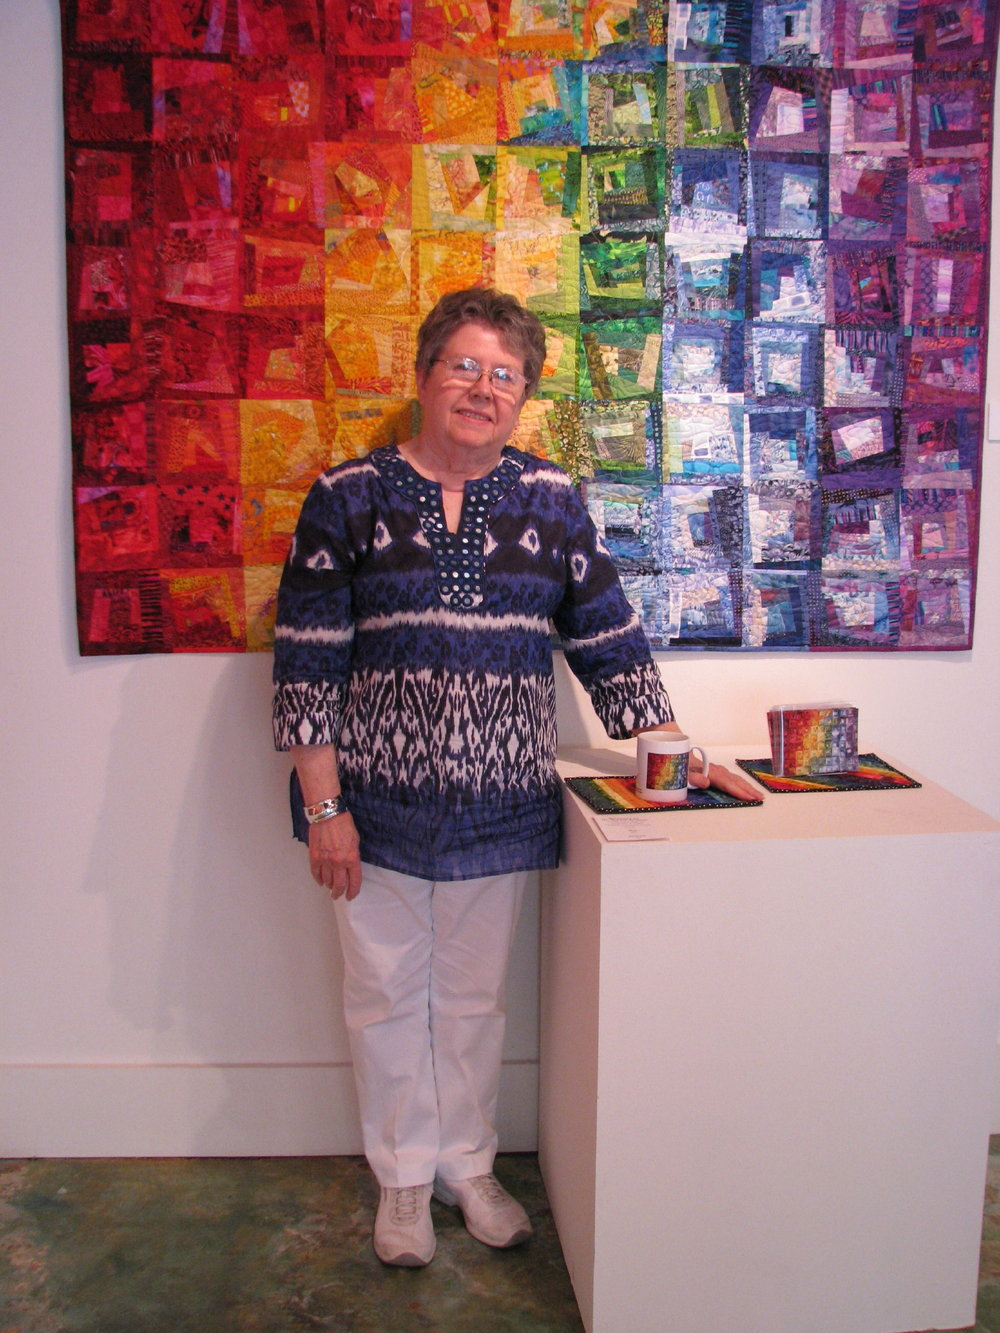 Wanda S. Hanson, in front of  Rainbow River  at her Exhibit in NC.